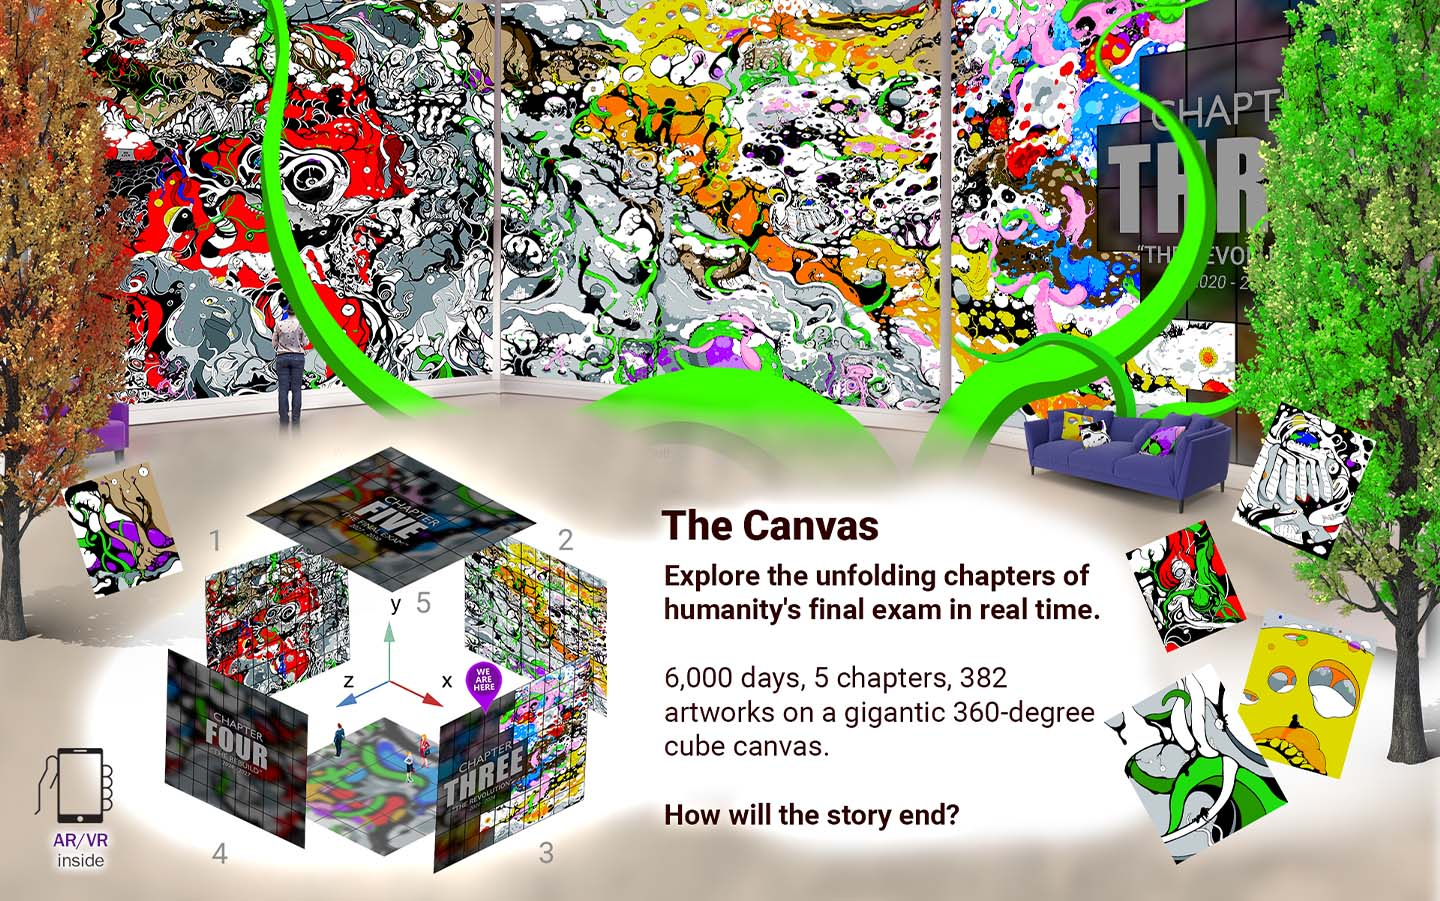 Grapevinewall-home-NEW-bottom